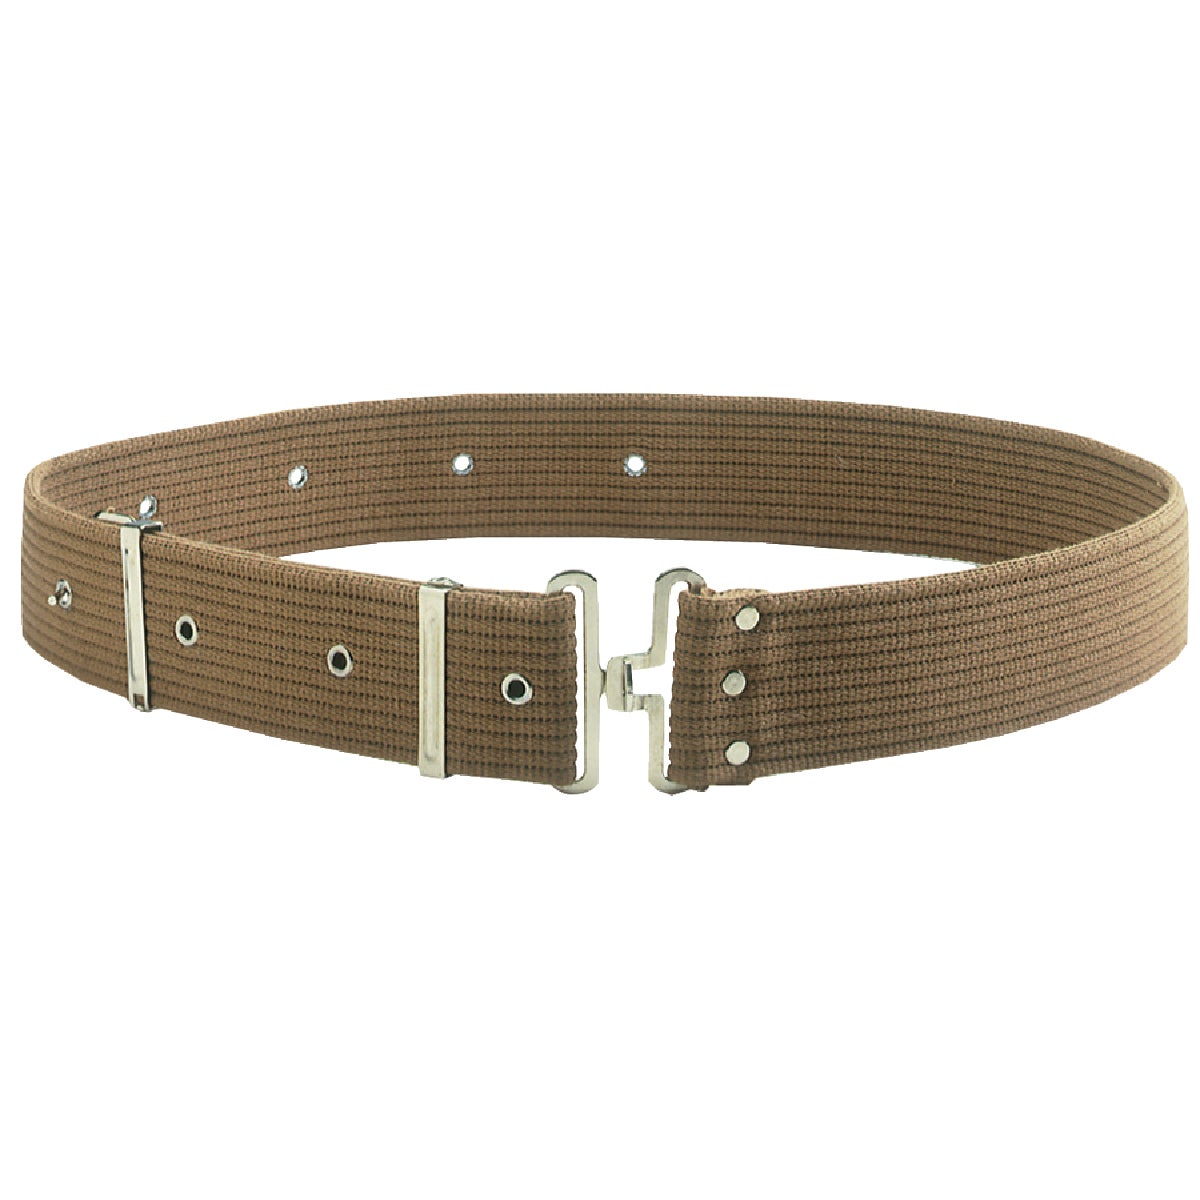 29-46 WEB WORK BELT